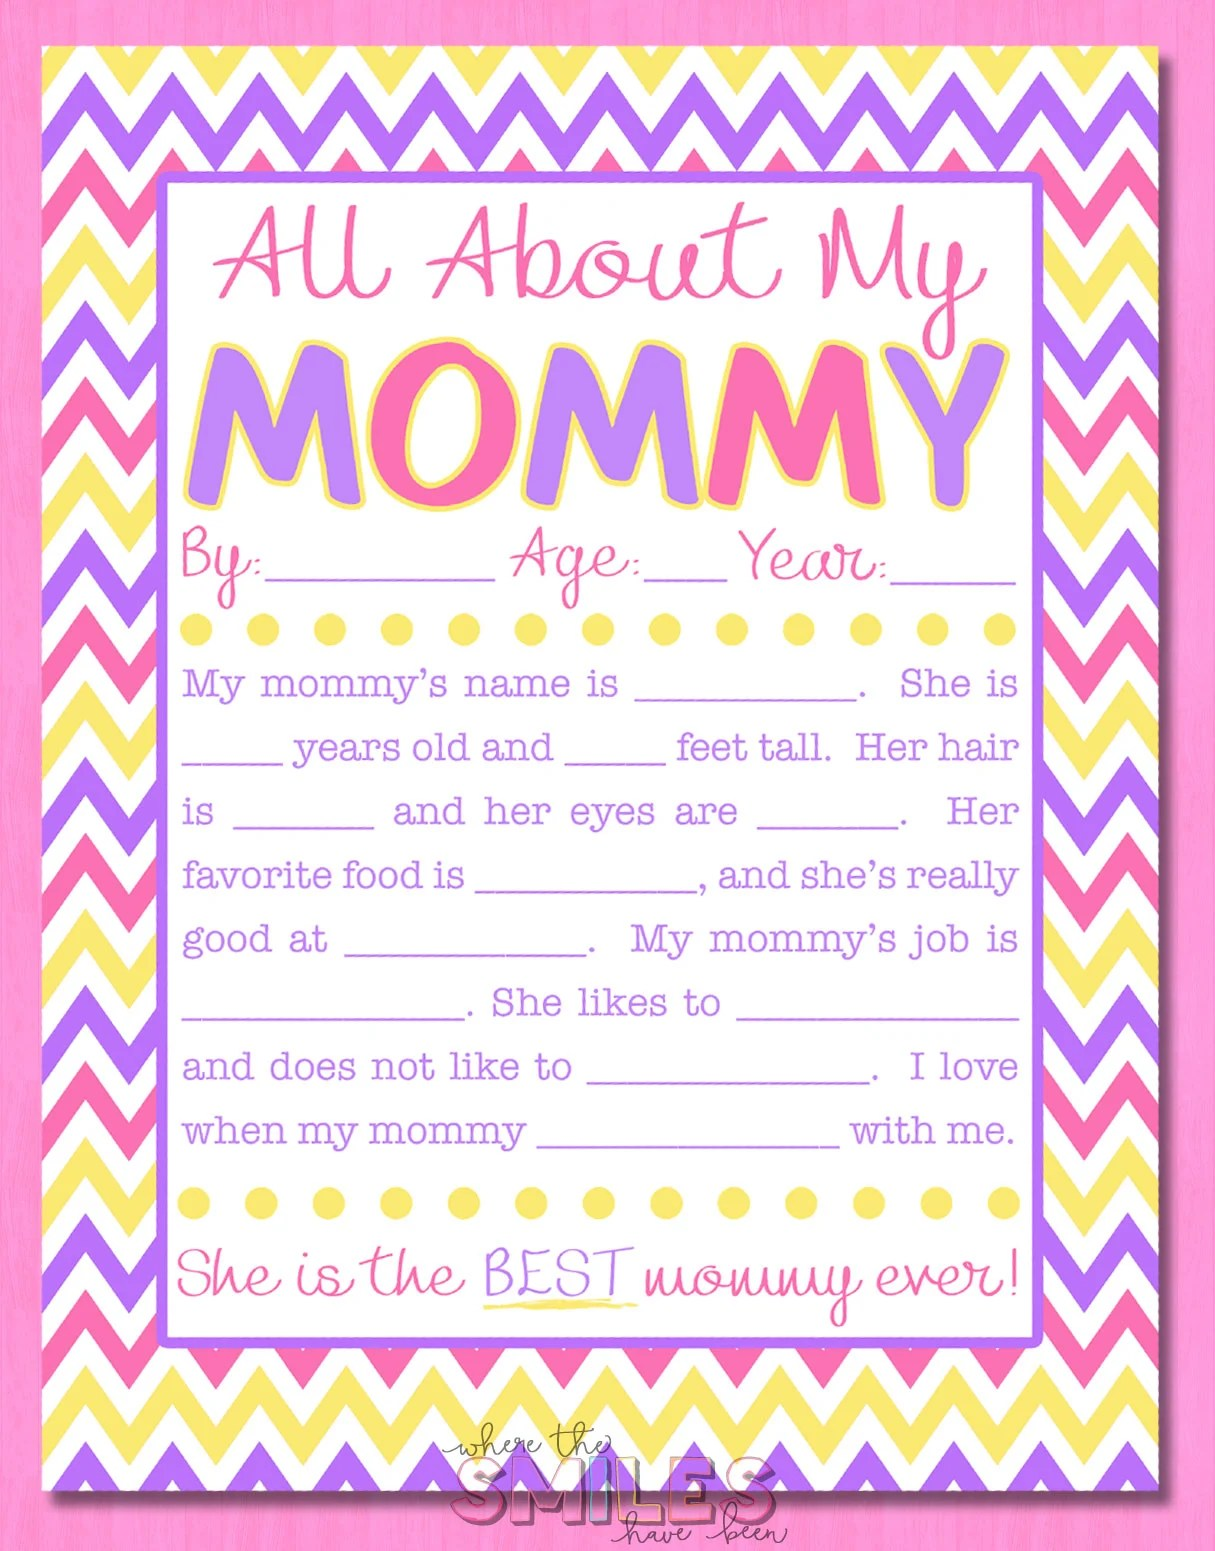 Captivating All About My Mommy Interview With FREE Printable! Where The Smiles Have  Been #MothersDay